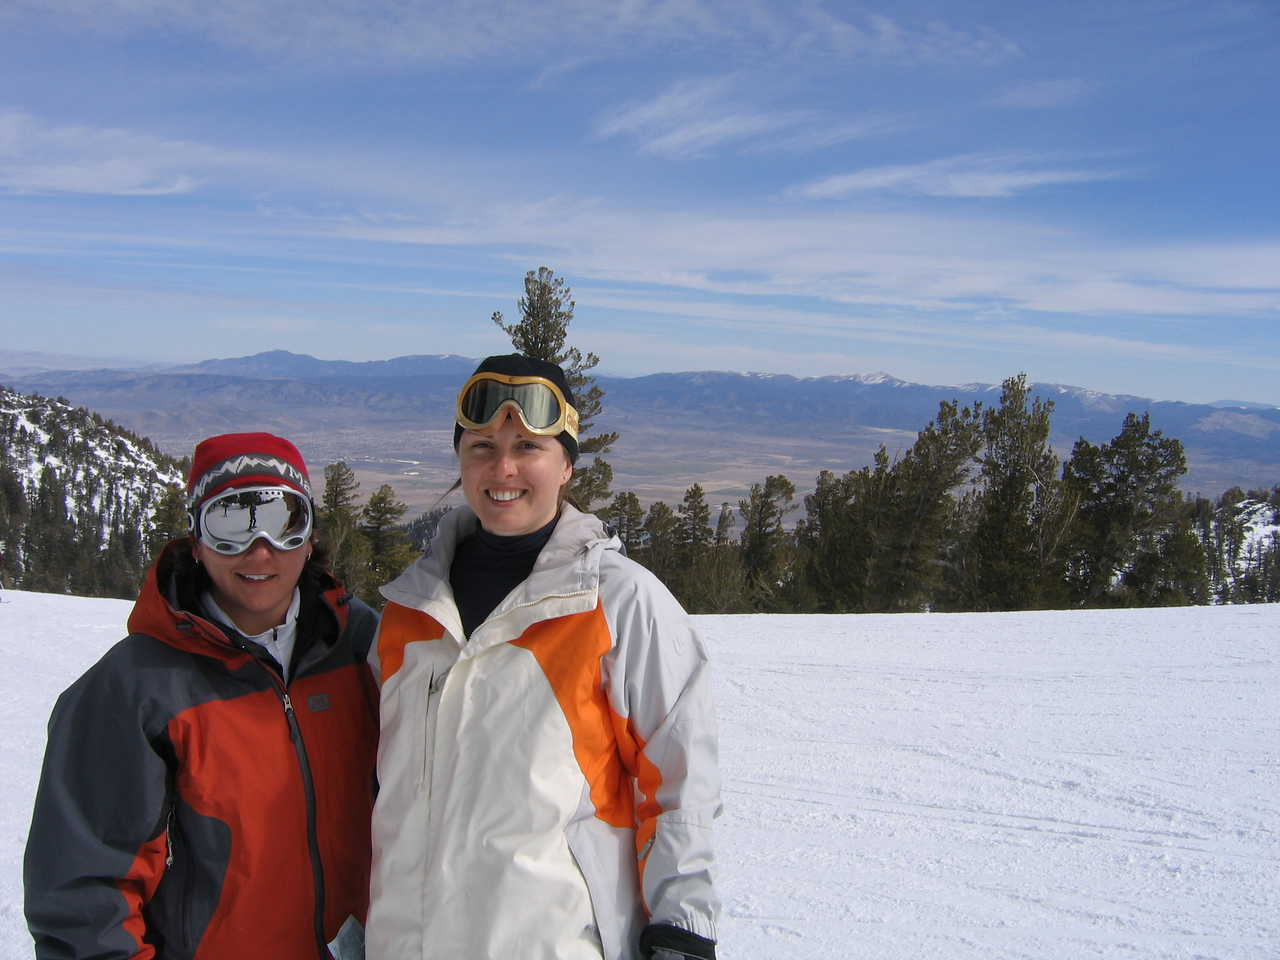 Becky and Carrie's postcard shot. Sorry about the tree growing out of your head. My bad.